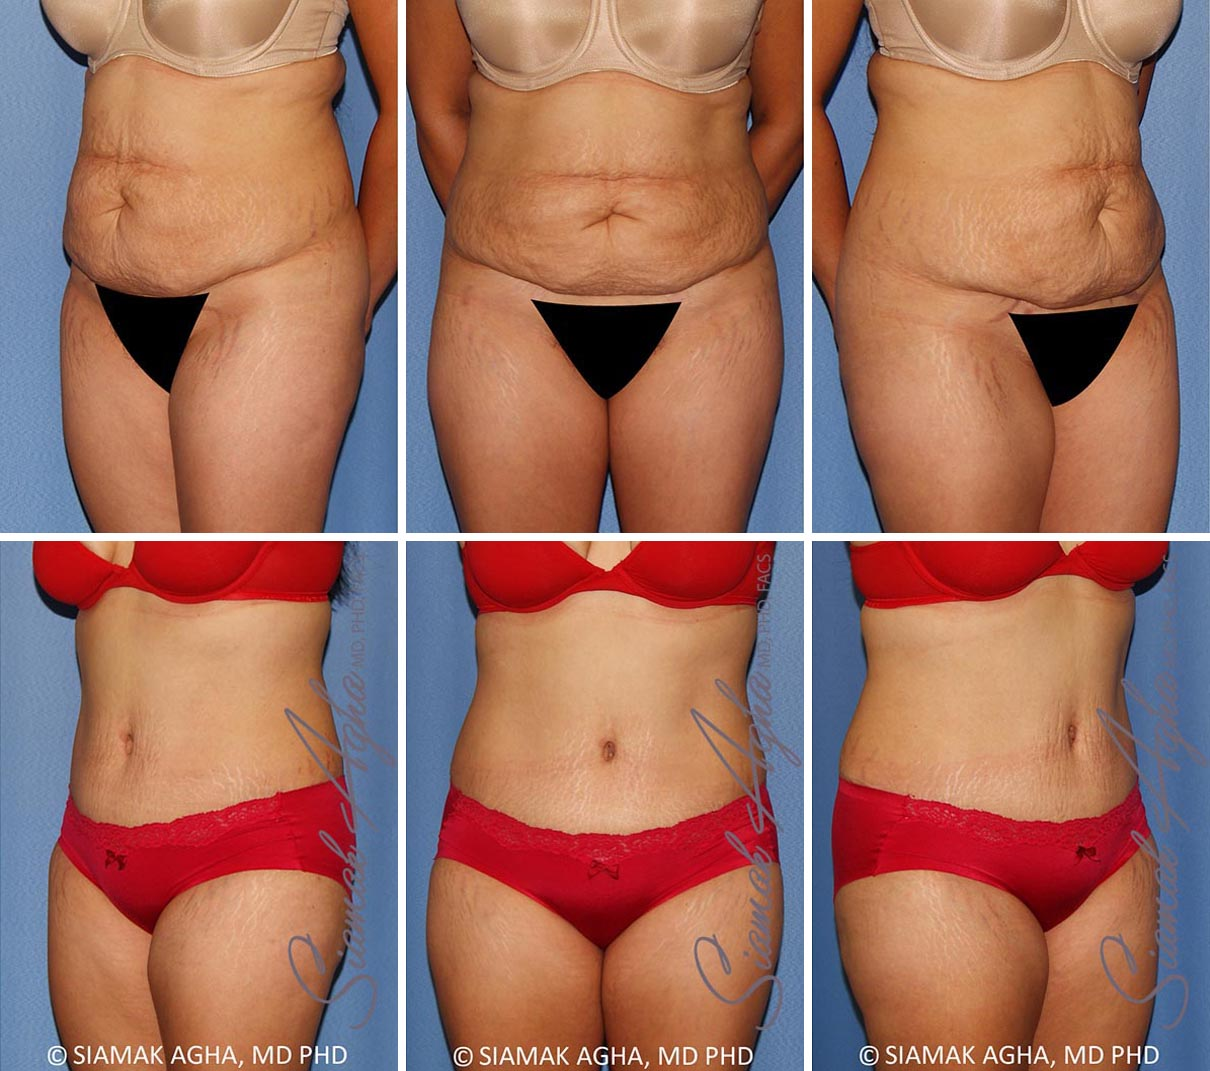 Tummy Tuck Before and After Set 3